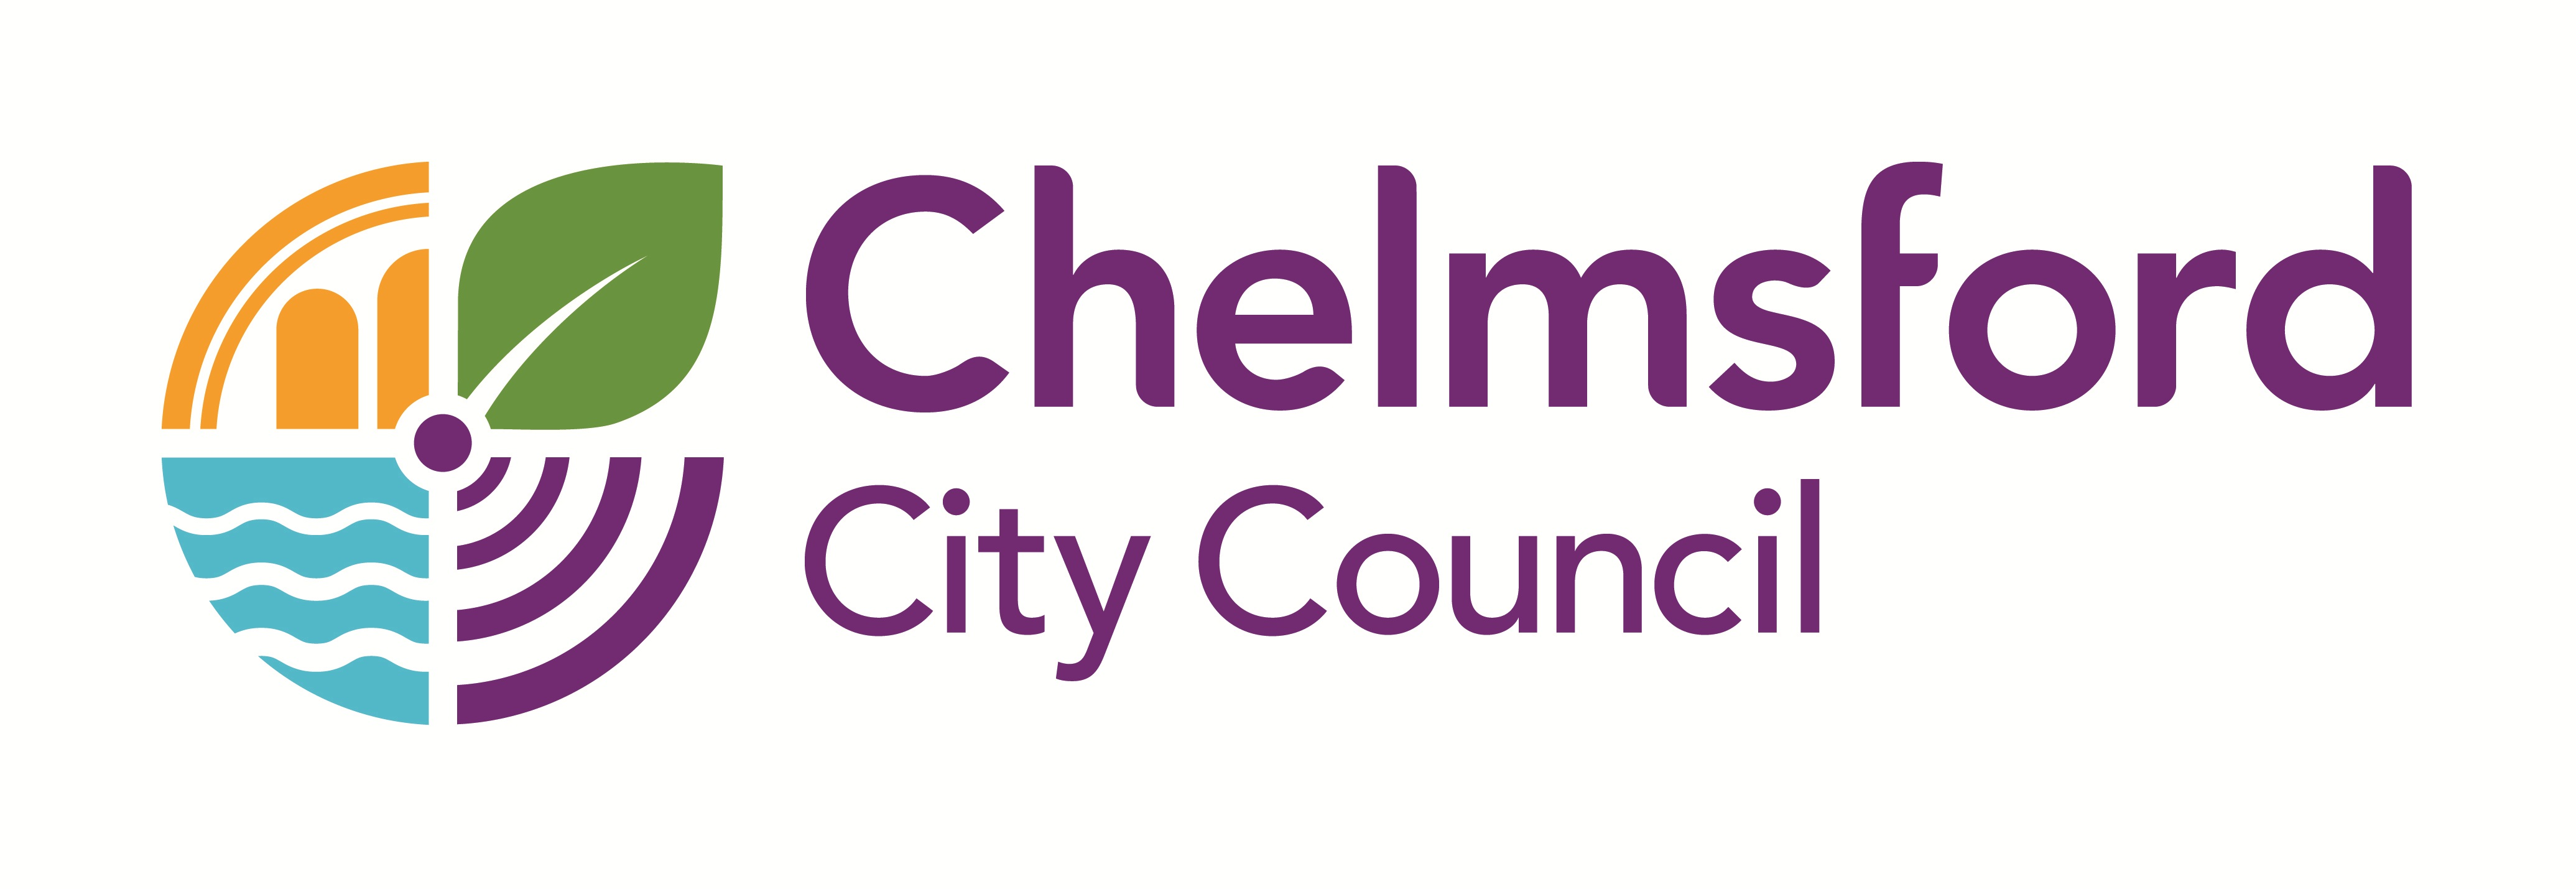 Chelmsford City Council